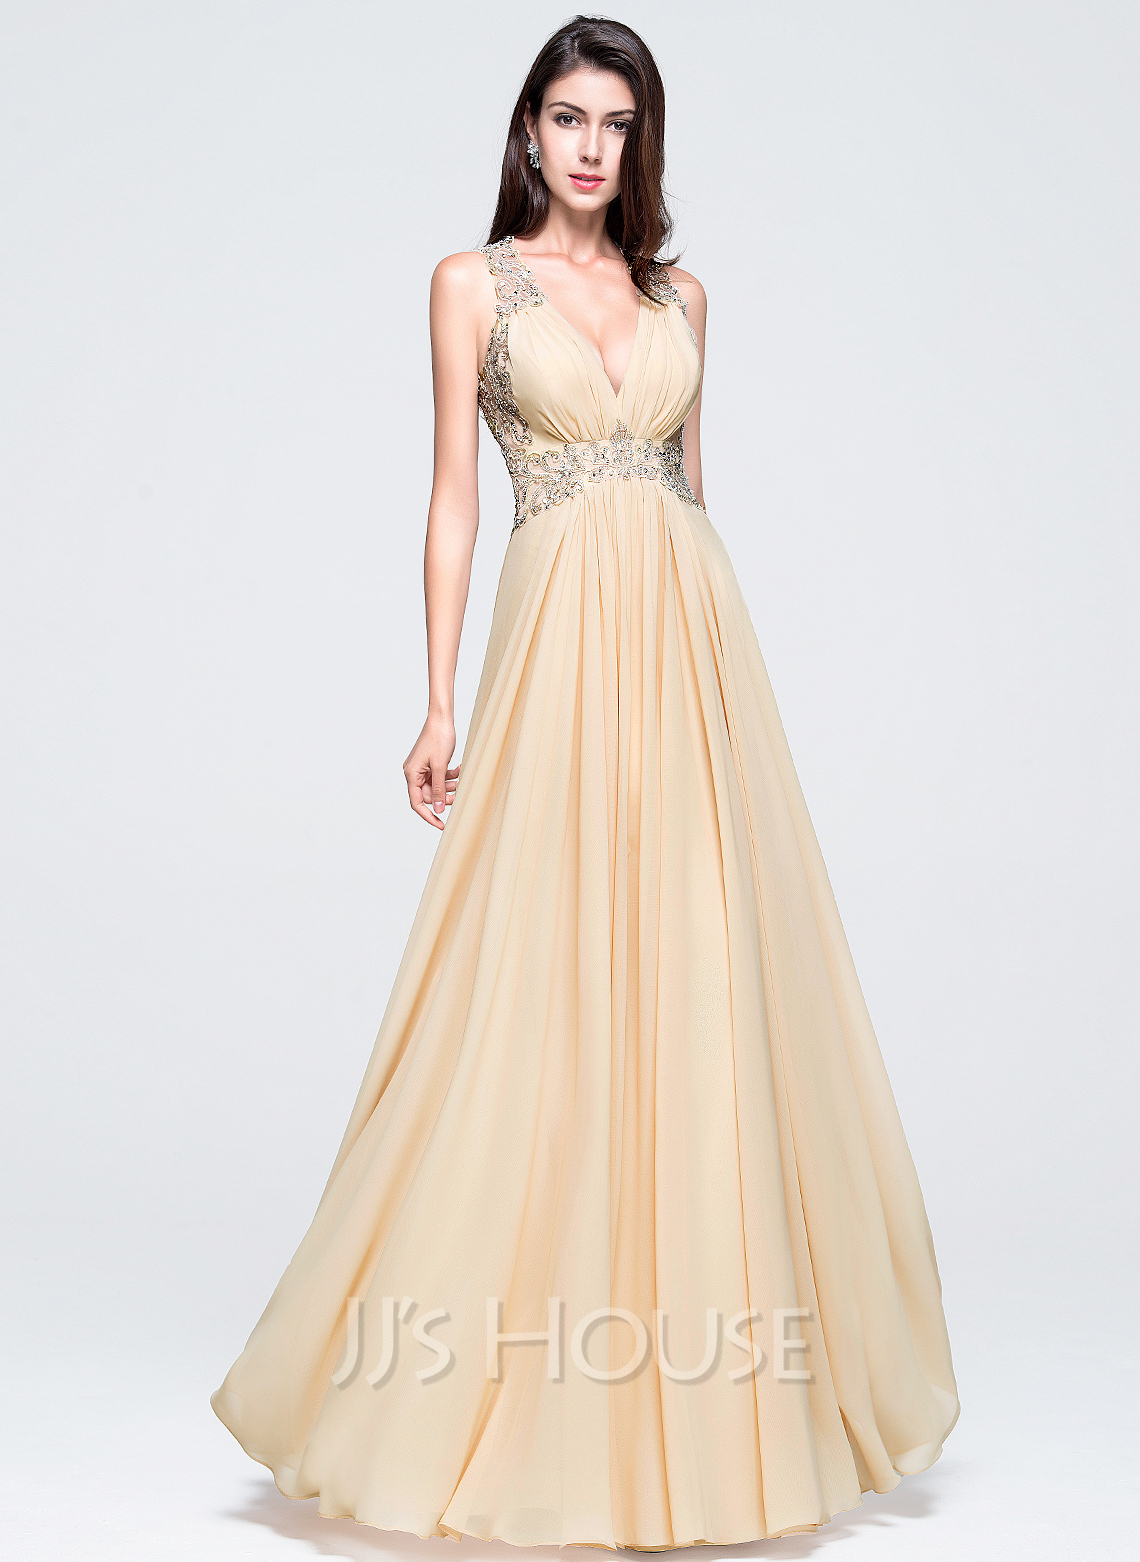 2d9467e4da9cec A-Line Princess V-neck Floor-Length Chiffon Prom Dresses With Beading.  Loading zoom